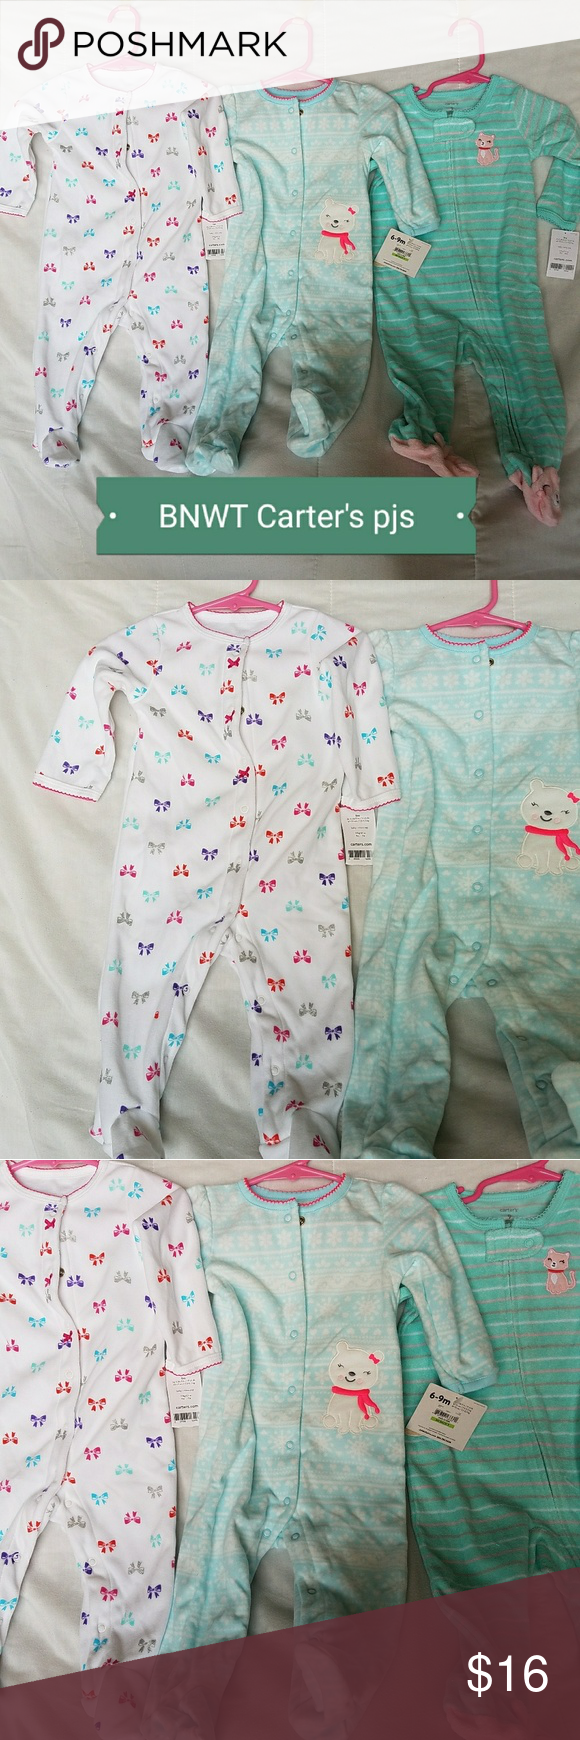 0f27475c6 BNWT Carter s winter fleece pj lot 6-9mo 3!! Brand New with tags ...